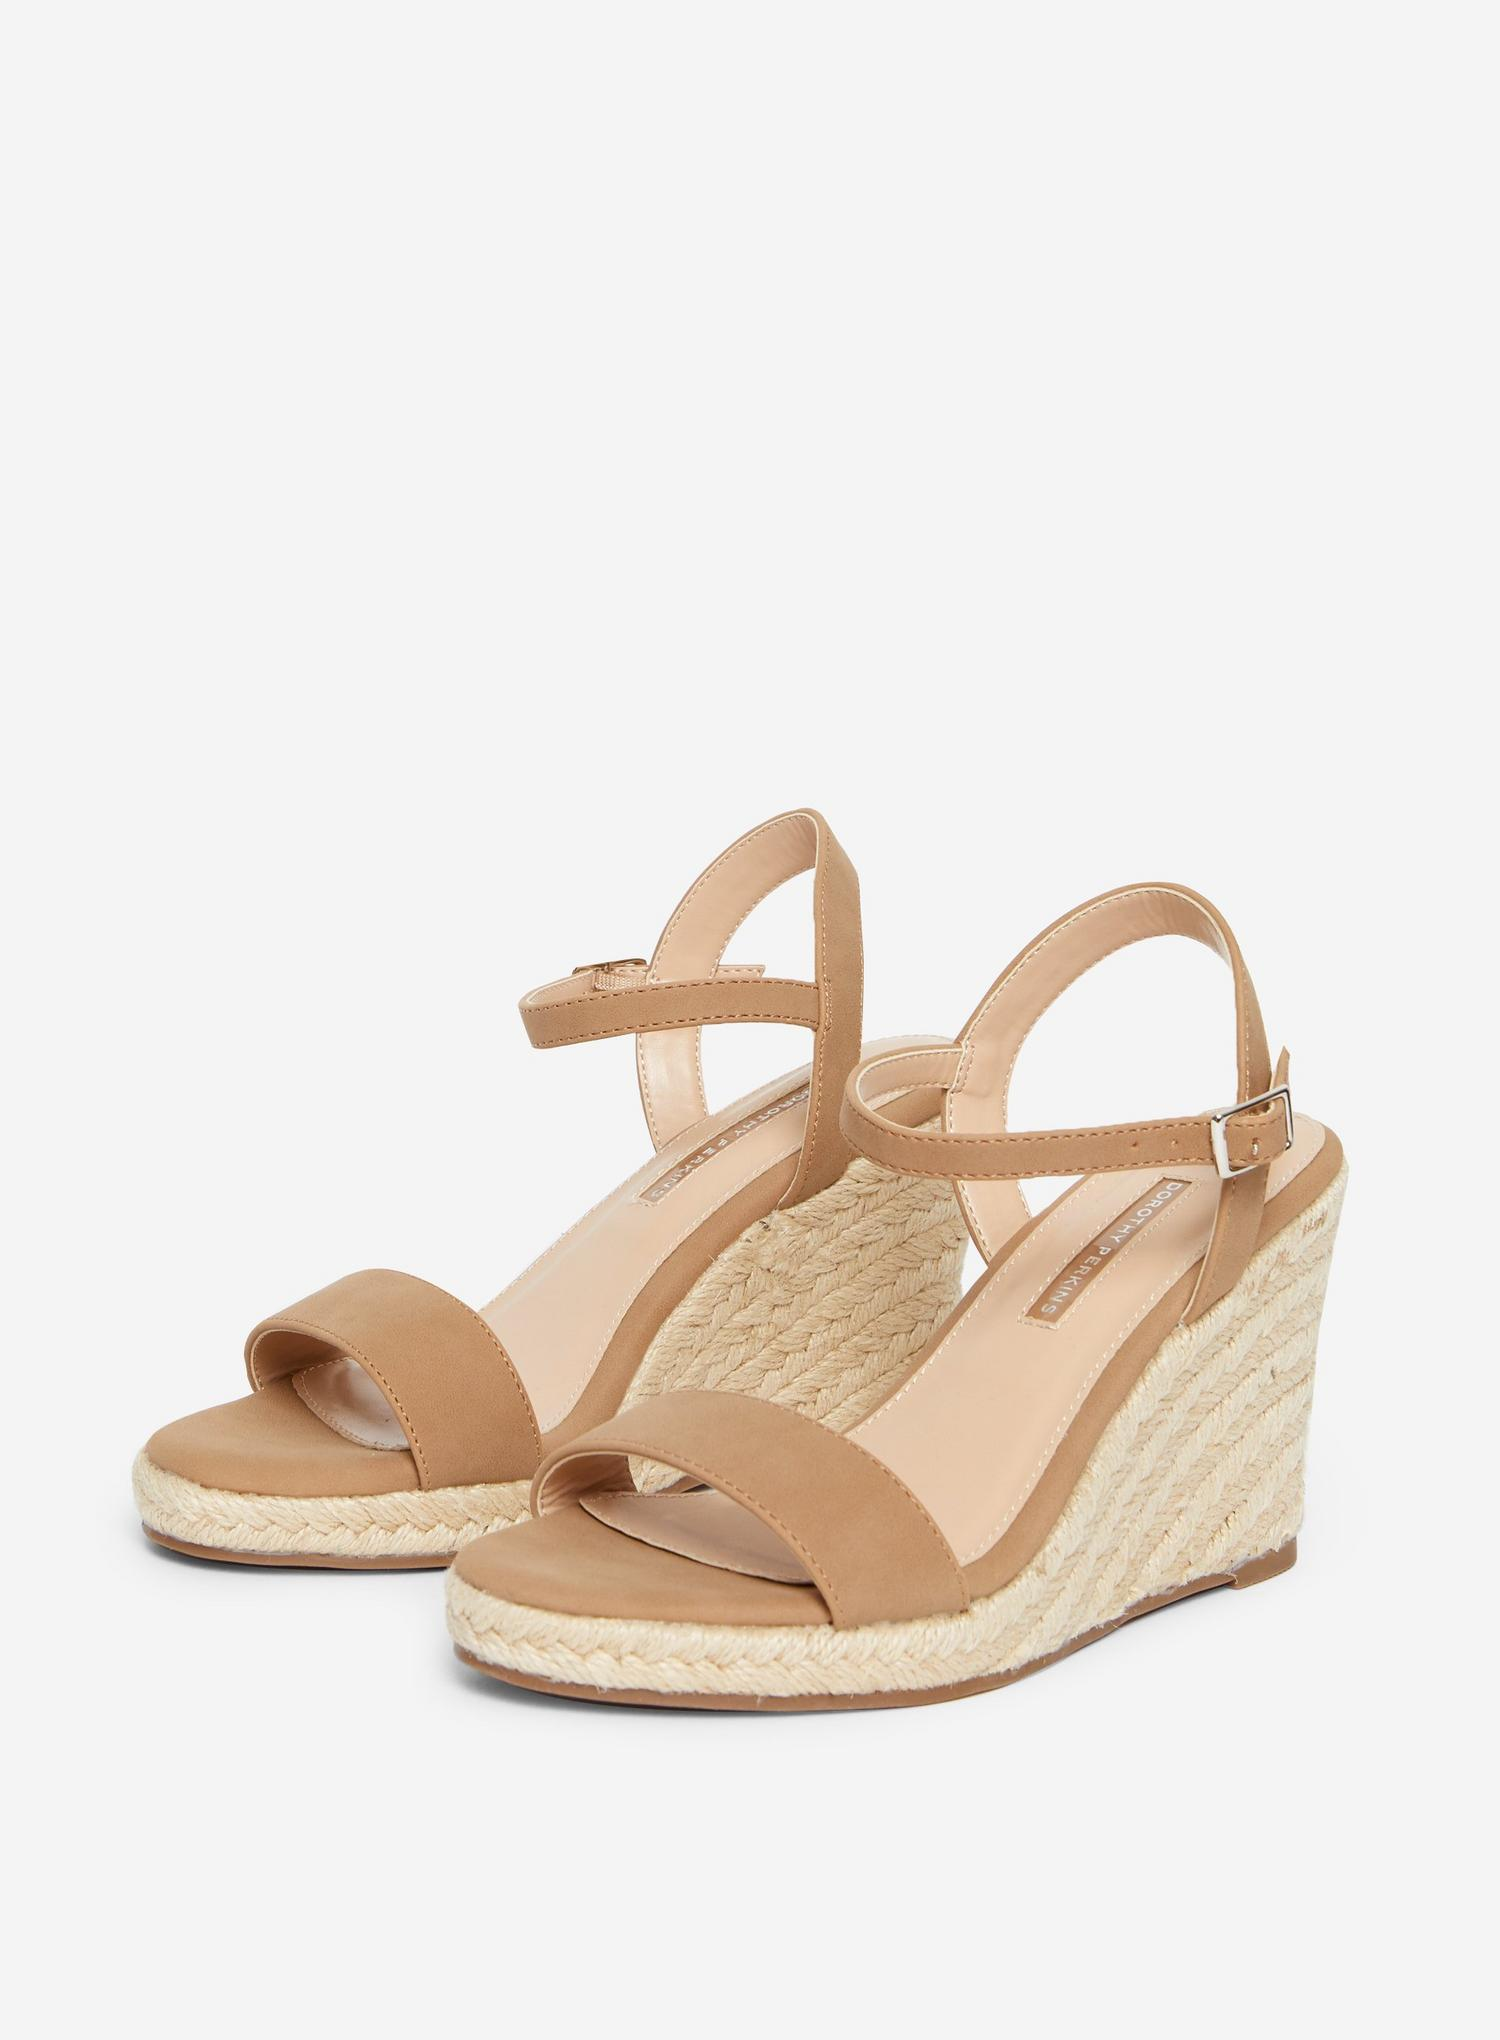 641 Taupe Ray-Ray Wedge Sandal  image number 1